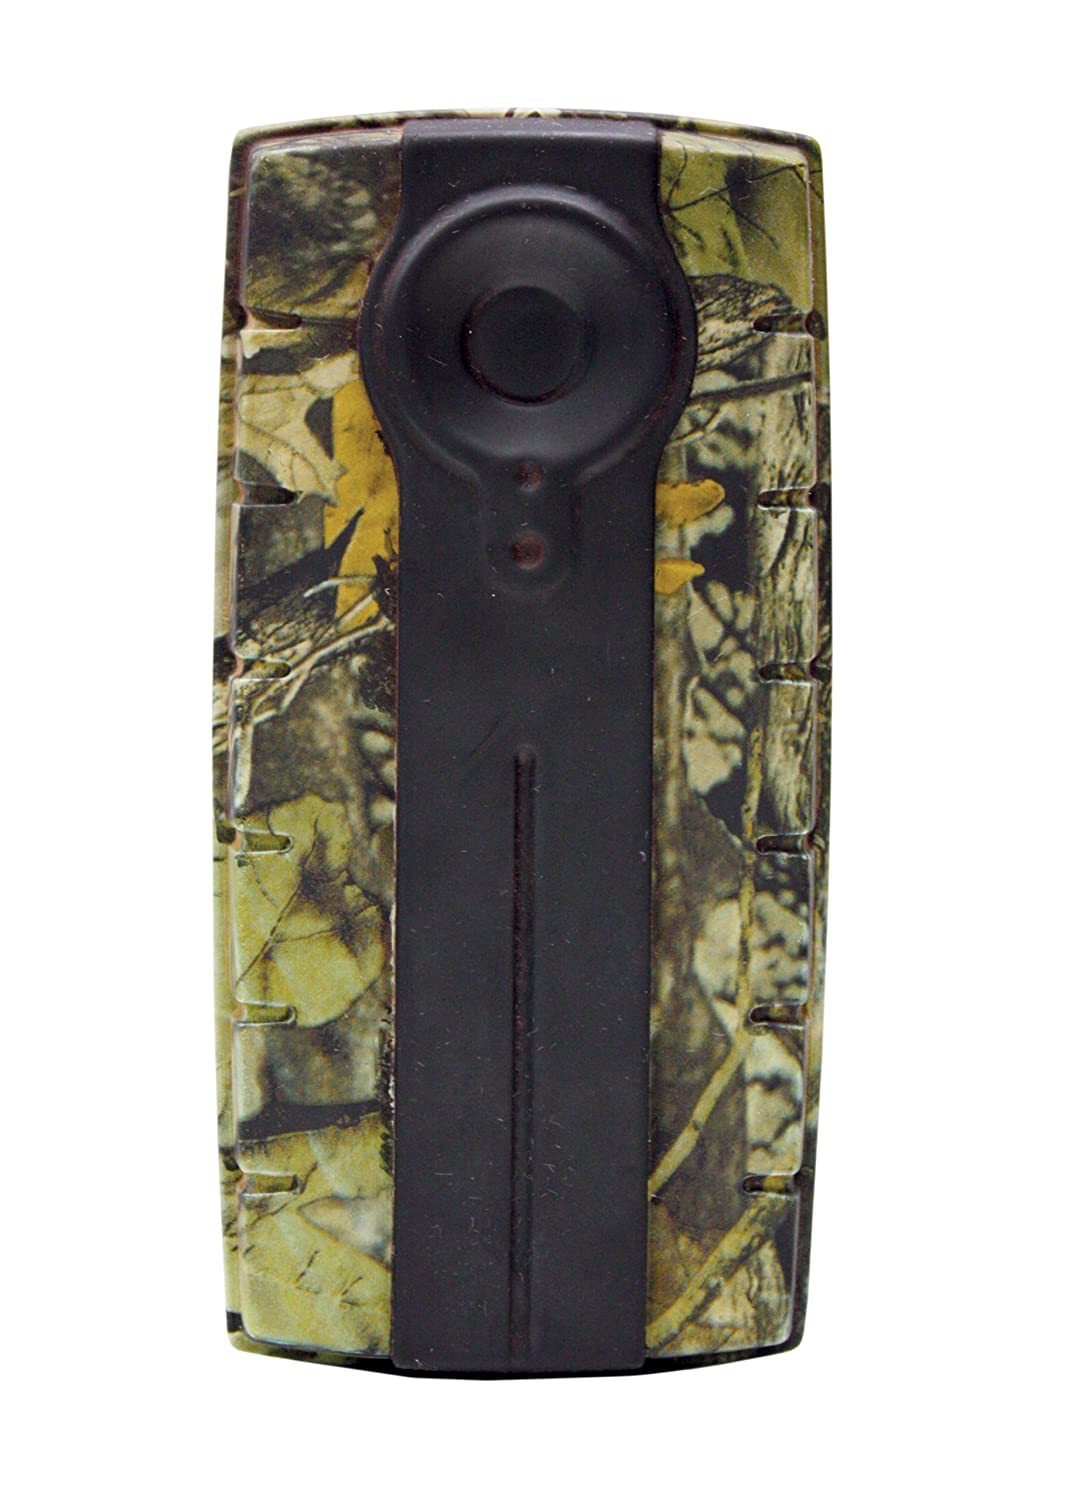 Primos Truth Dps Deer Positioning System Trail And Very Basic Motion Tracking With 2 Pir Sensors Lucky Larry Game Camera Hunting Cameras Sports Outdoors